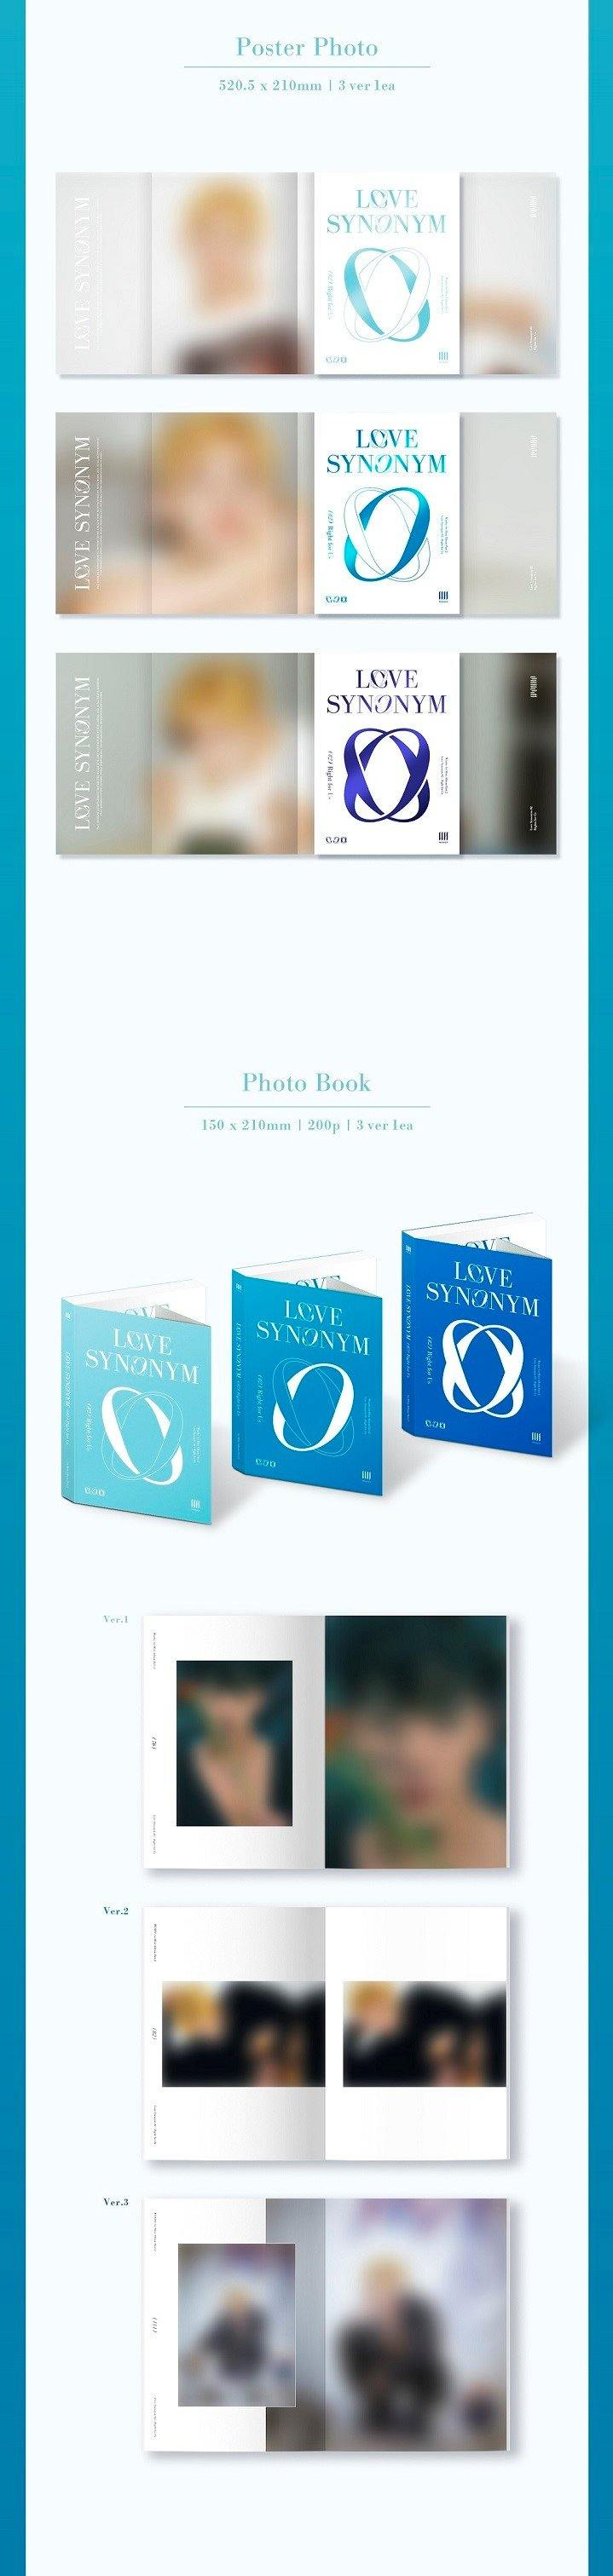 WONHO - LOVE SYNONYM #2 : RIGHT FOR US (1ST MINI ALBUM PART.2 ) - Pre-Order